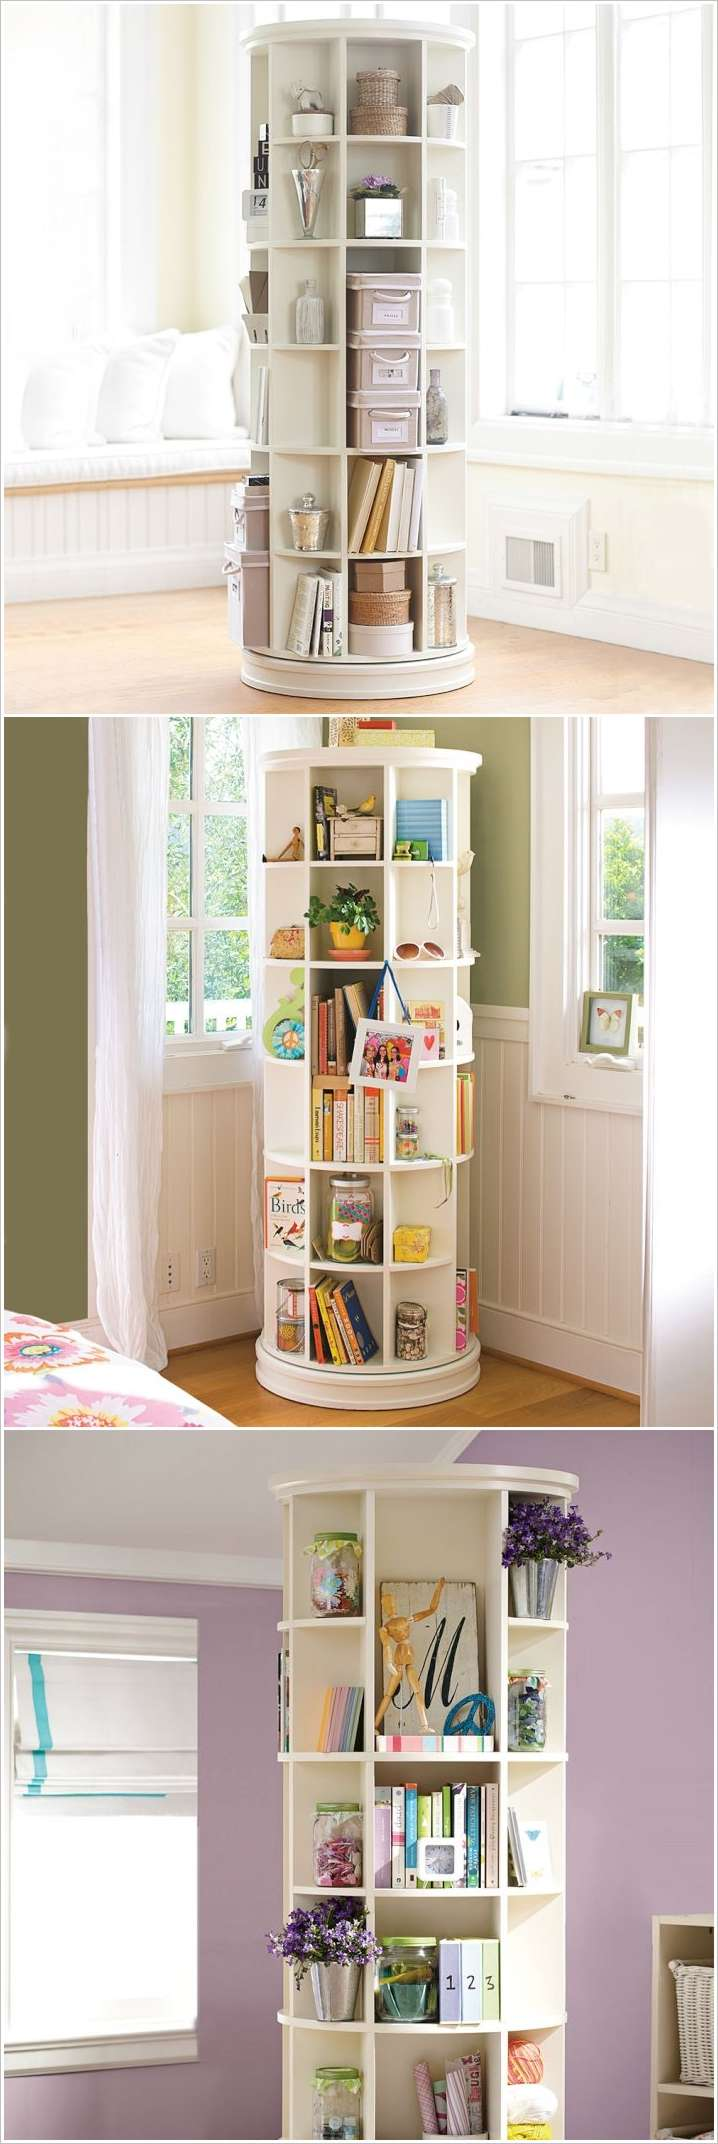 10 clever solutions for small space teen bedrooms Bookshelves in bedroom ideas